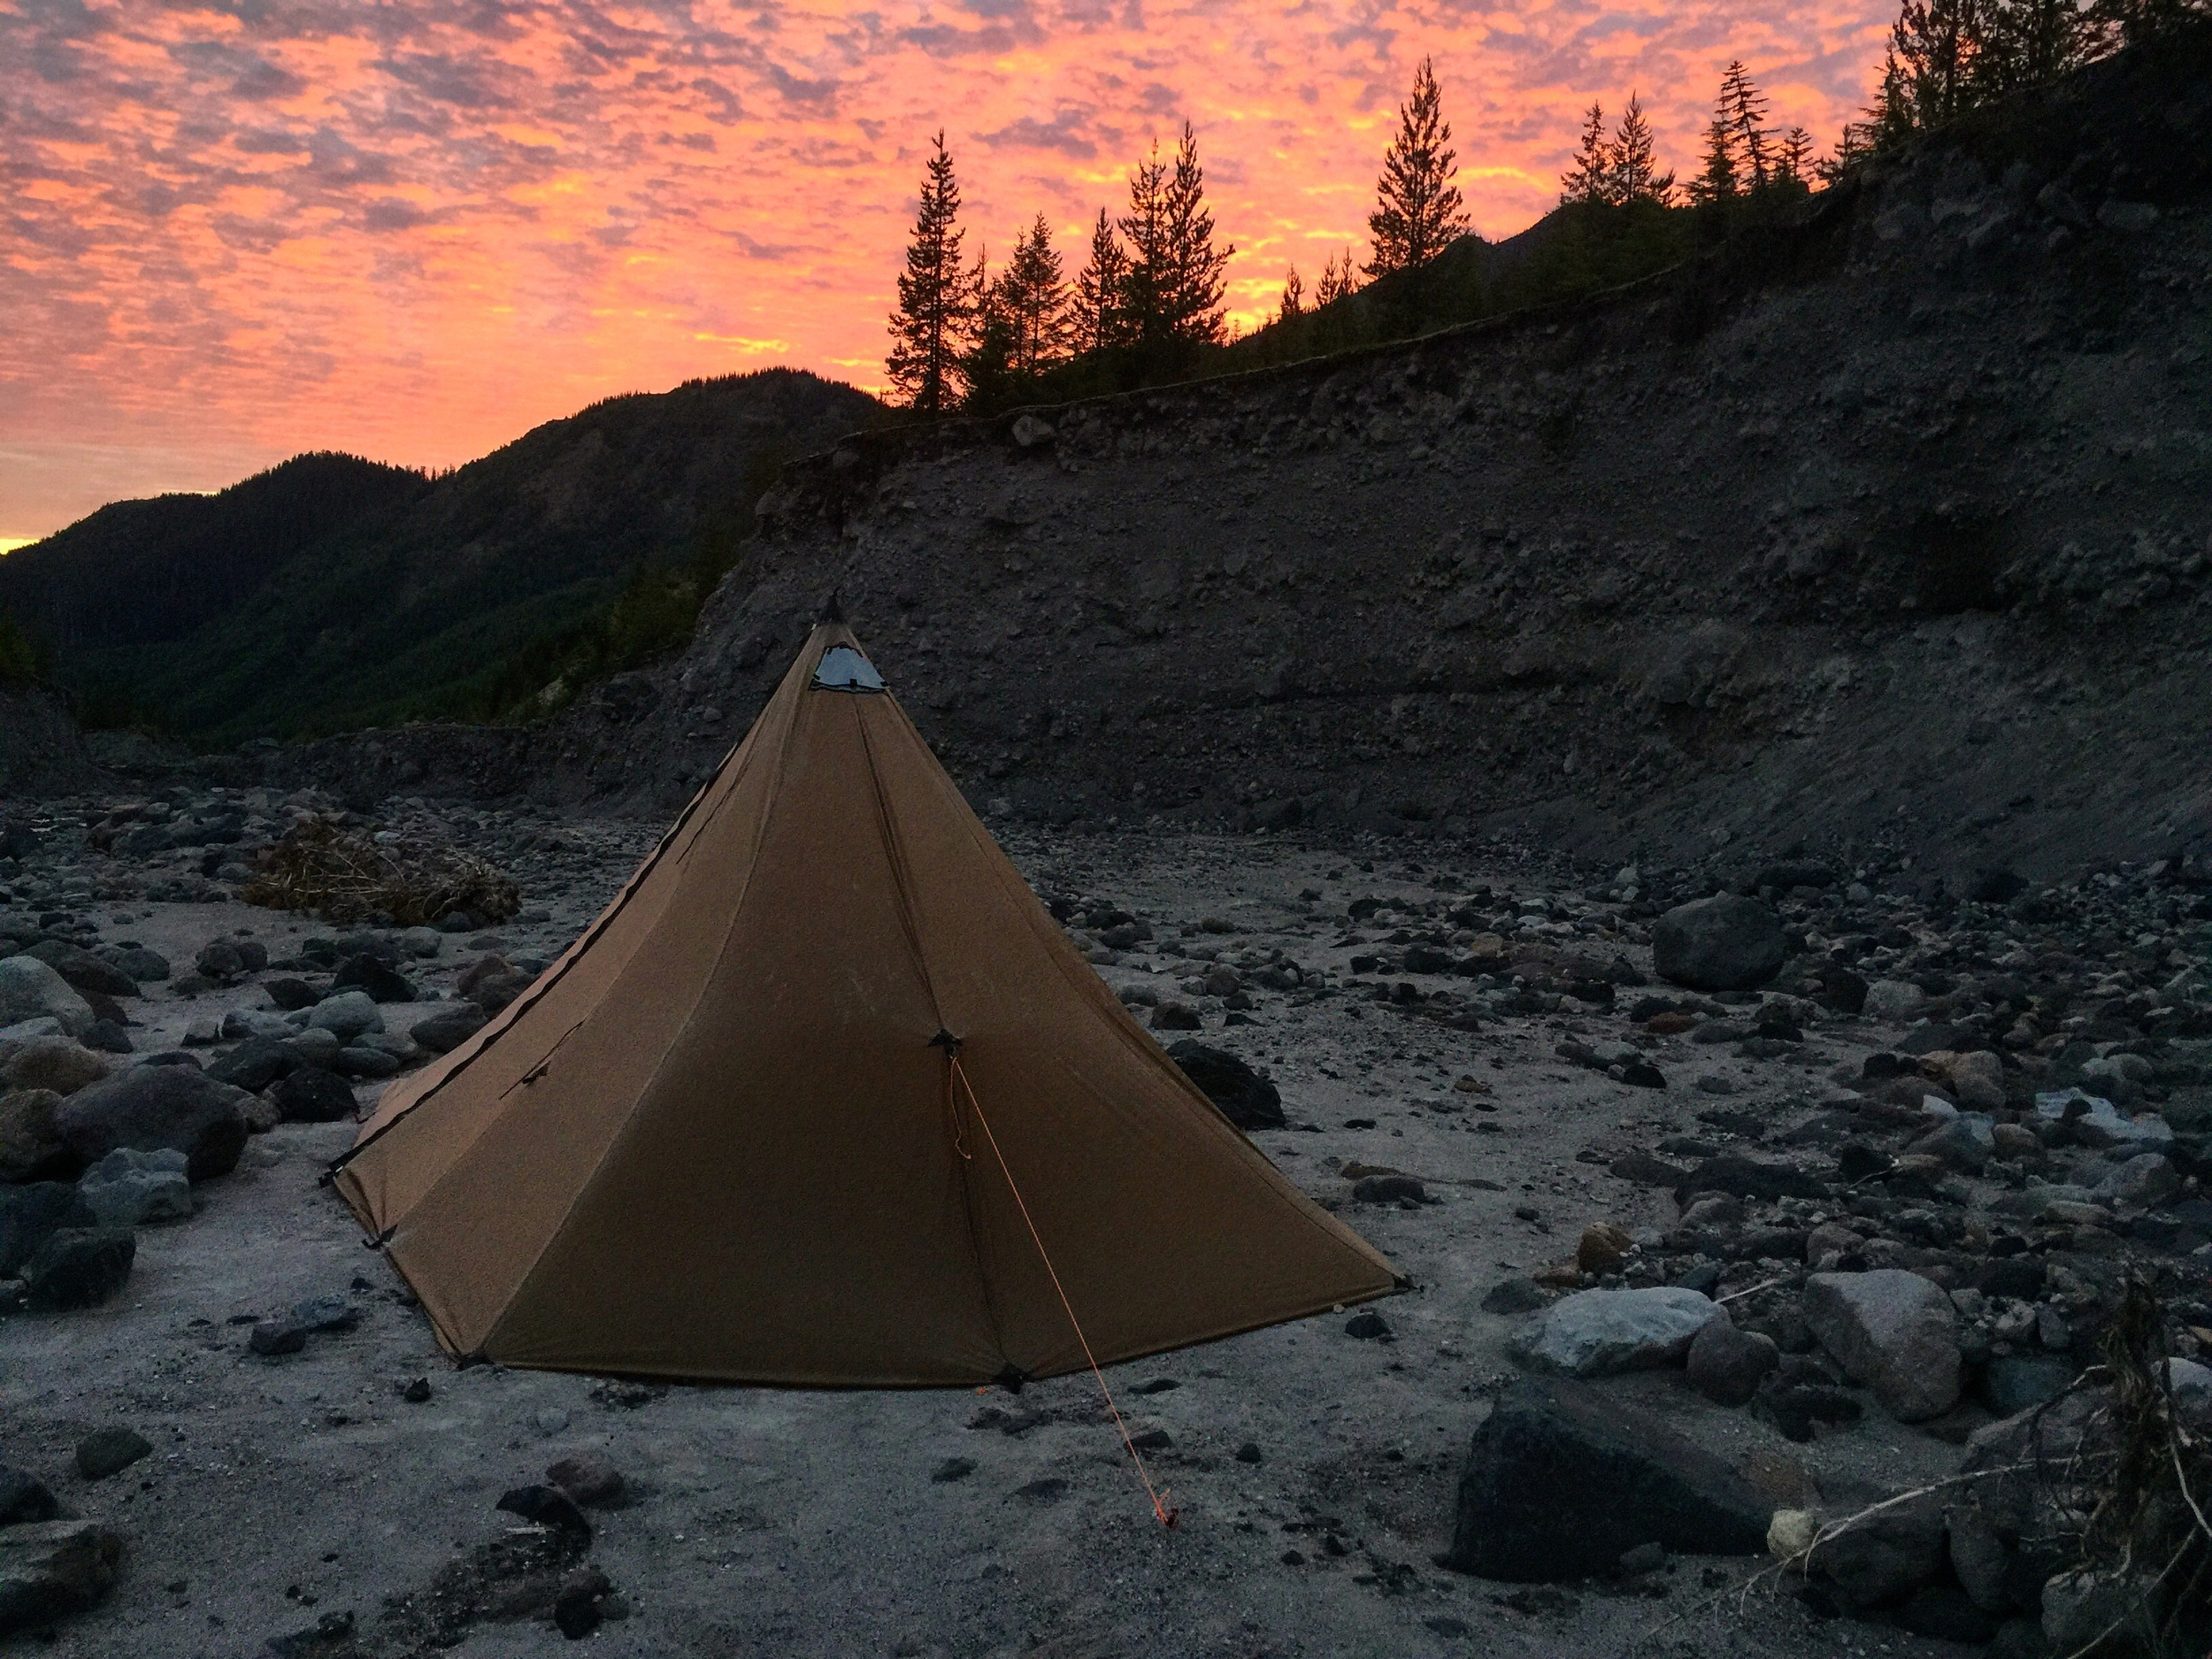 Awesome camp site on the Toutle River. Steps away from the water and a nice flat surface to sleep on.